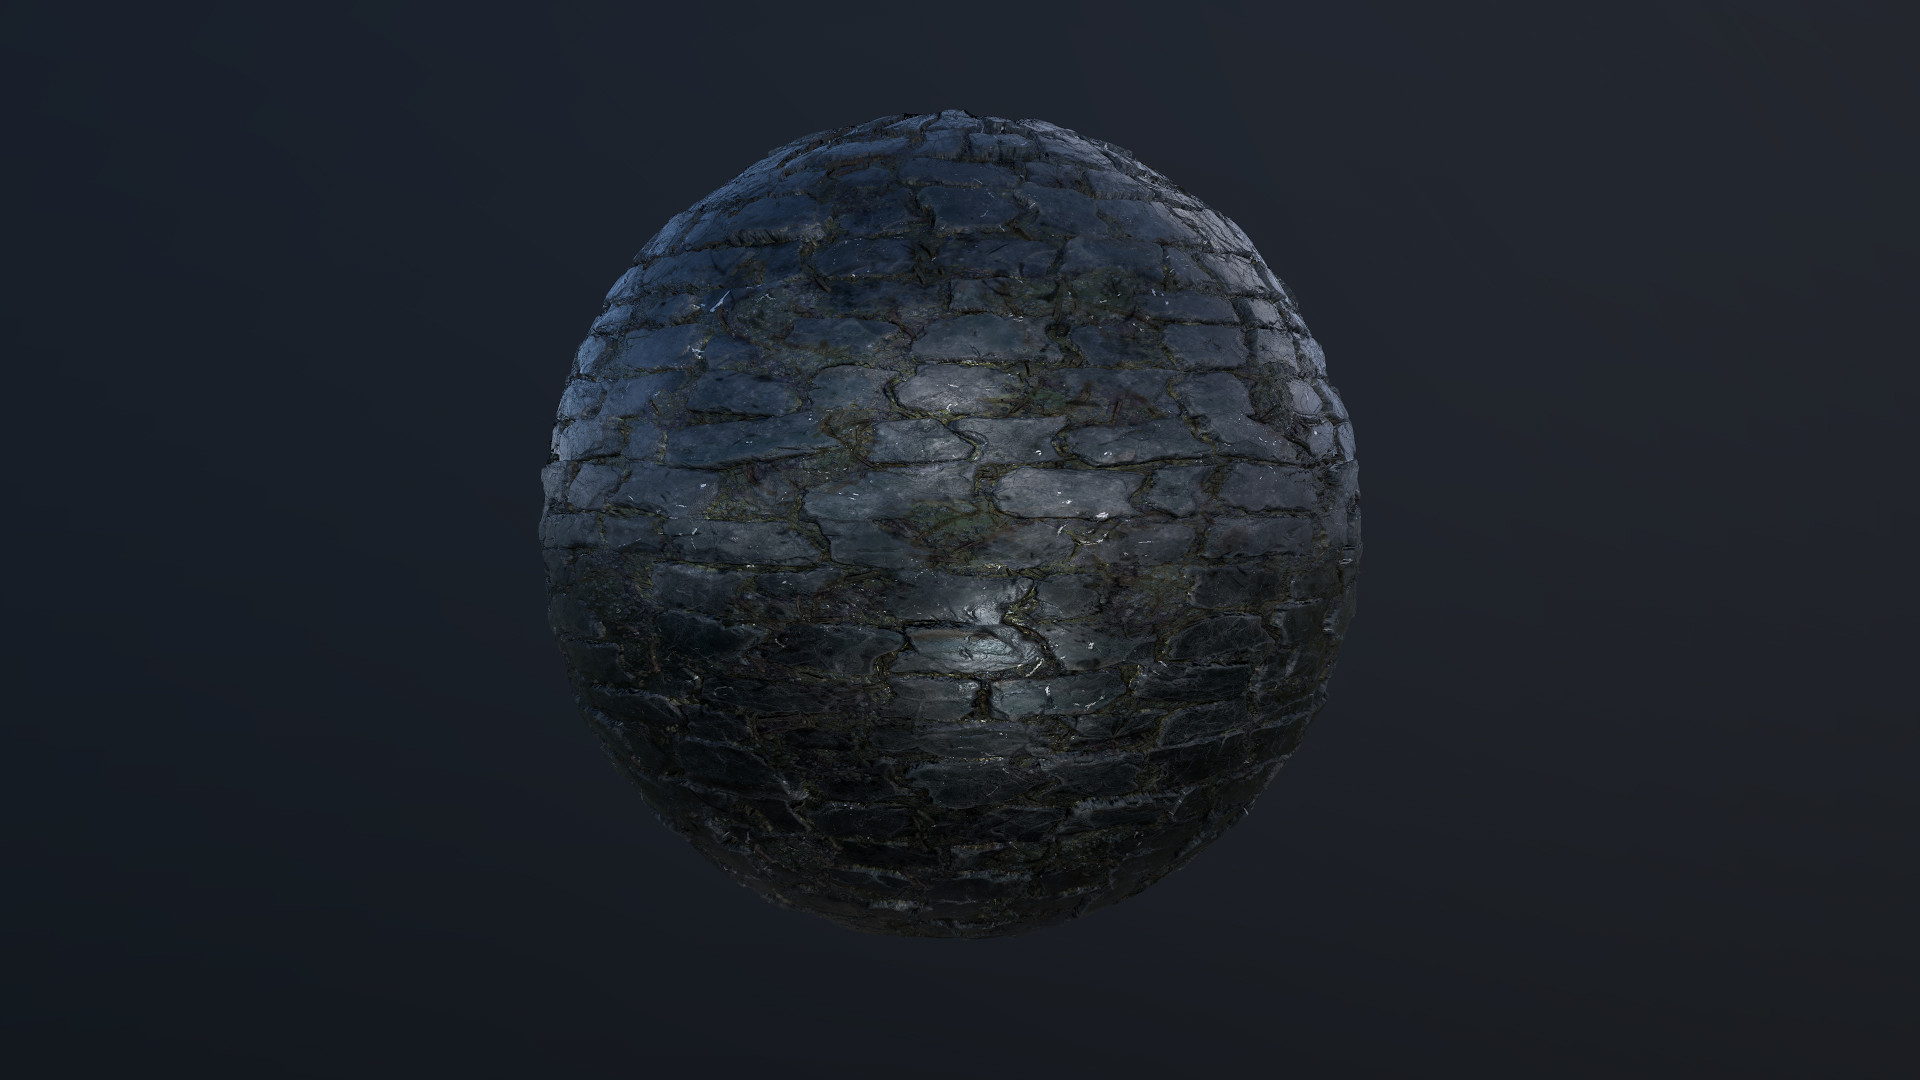 Rendered in Marmoset